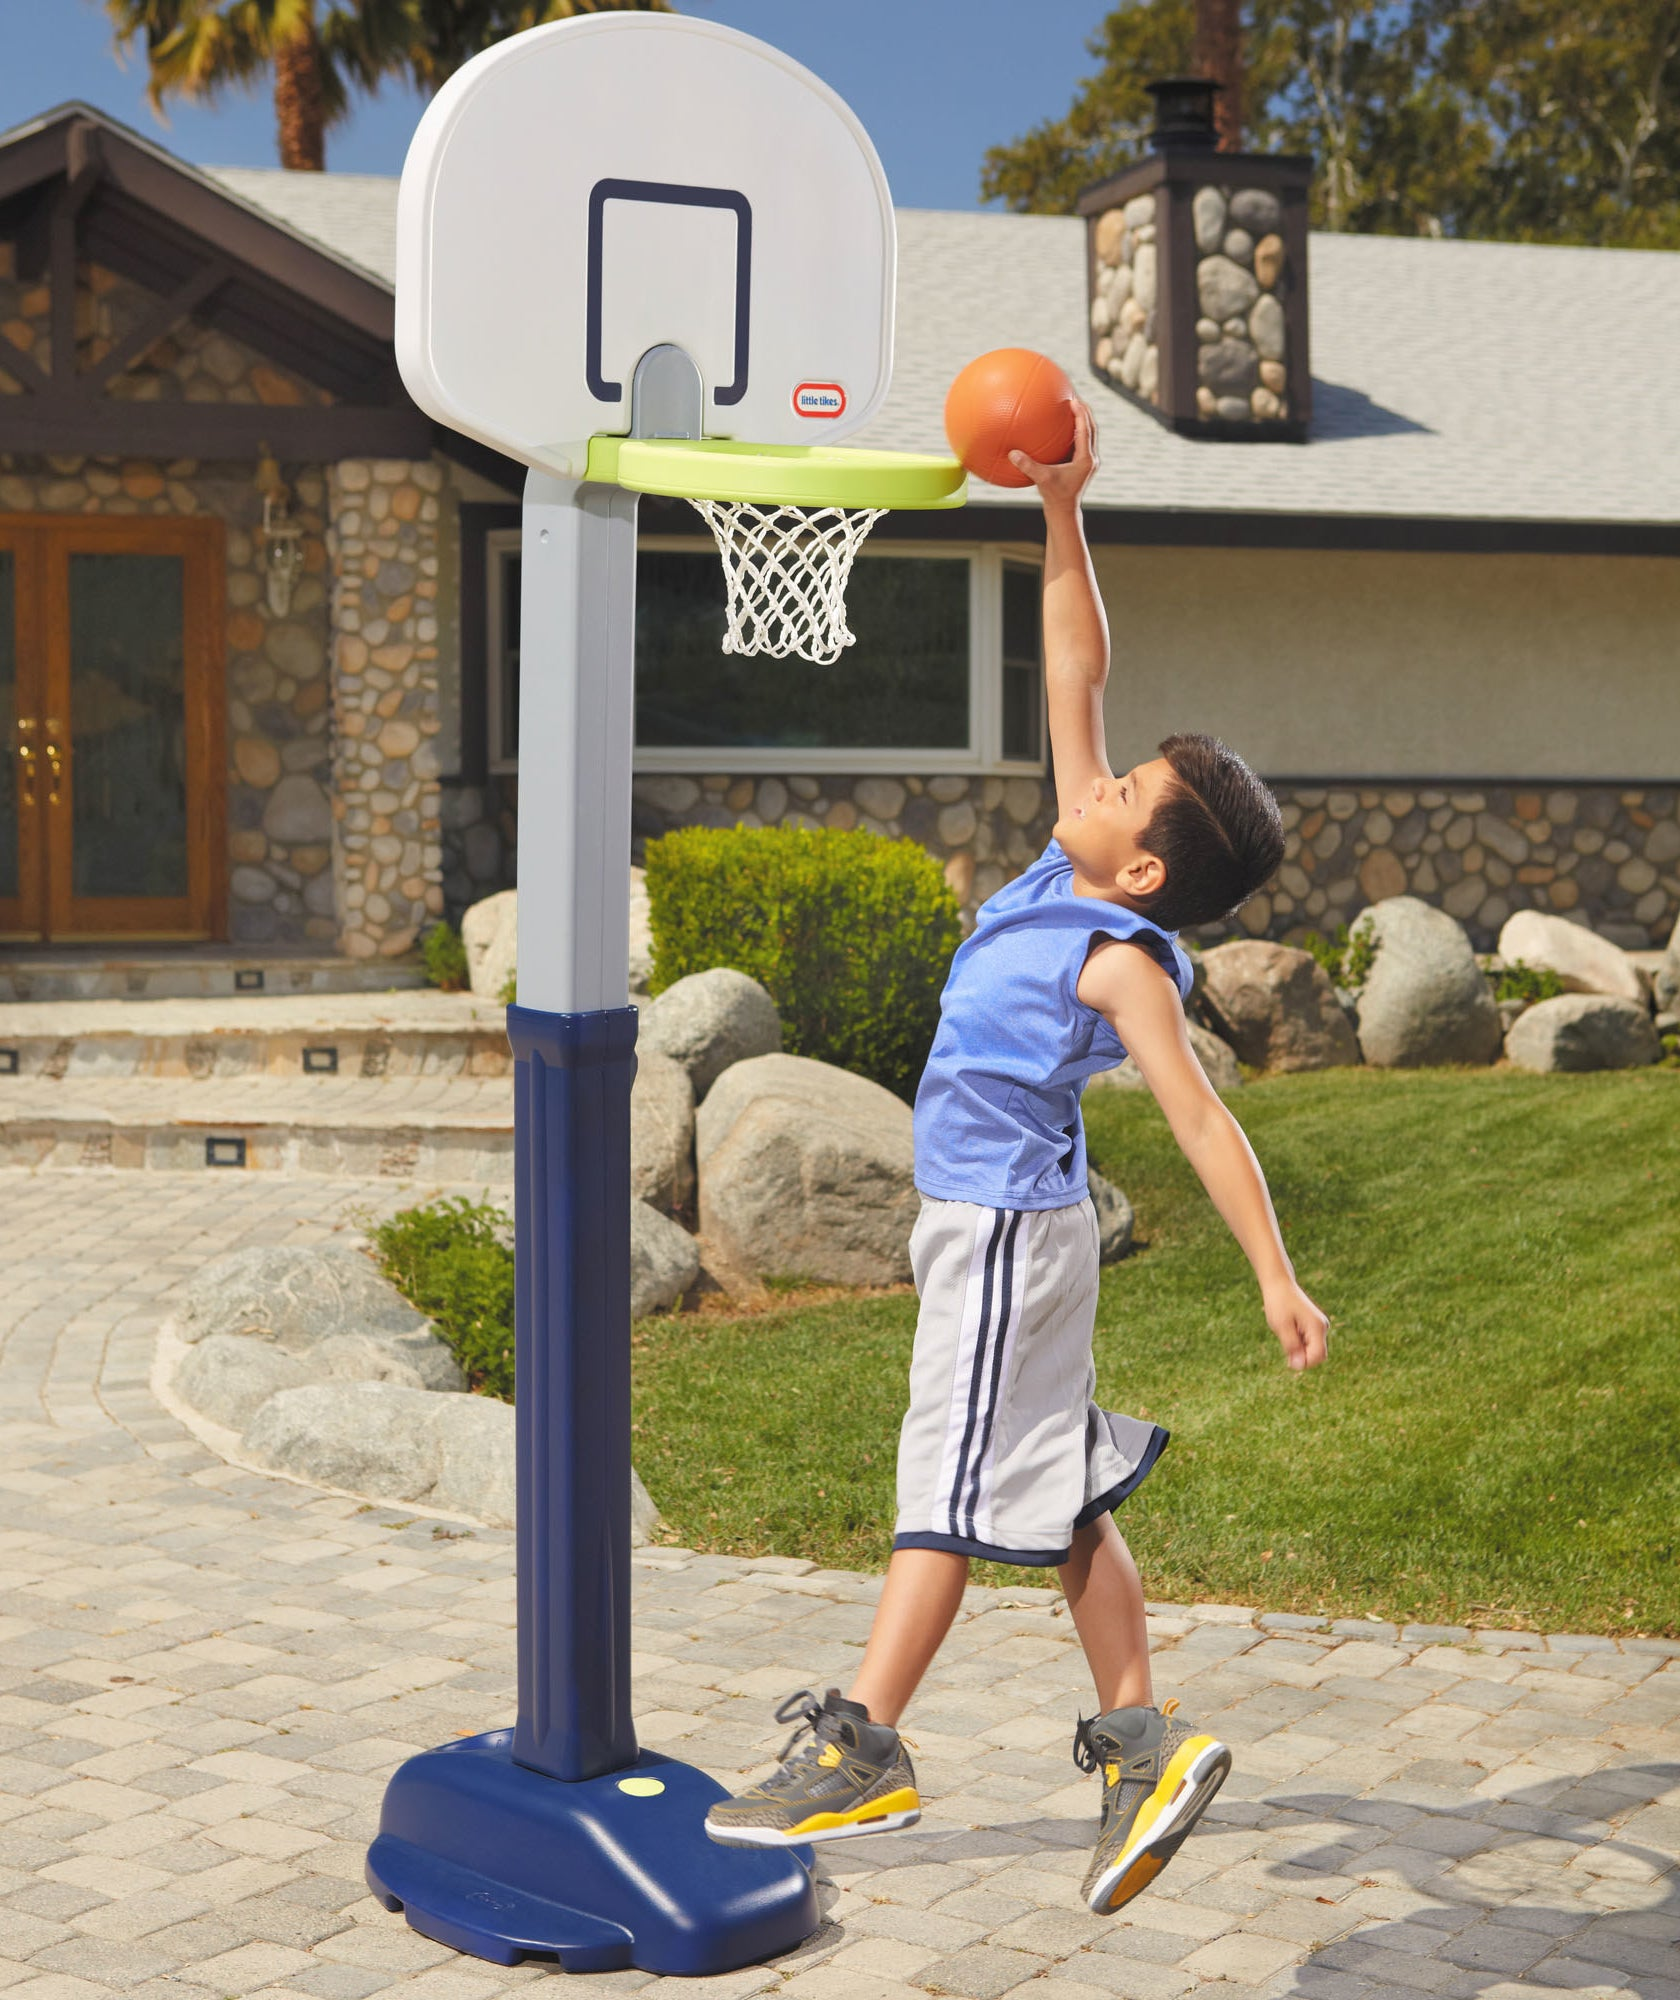 child slam dunking a small basketball into a little tikes basketball hoop